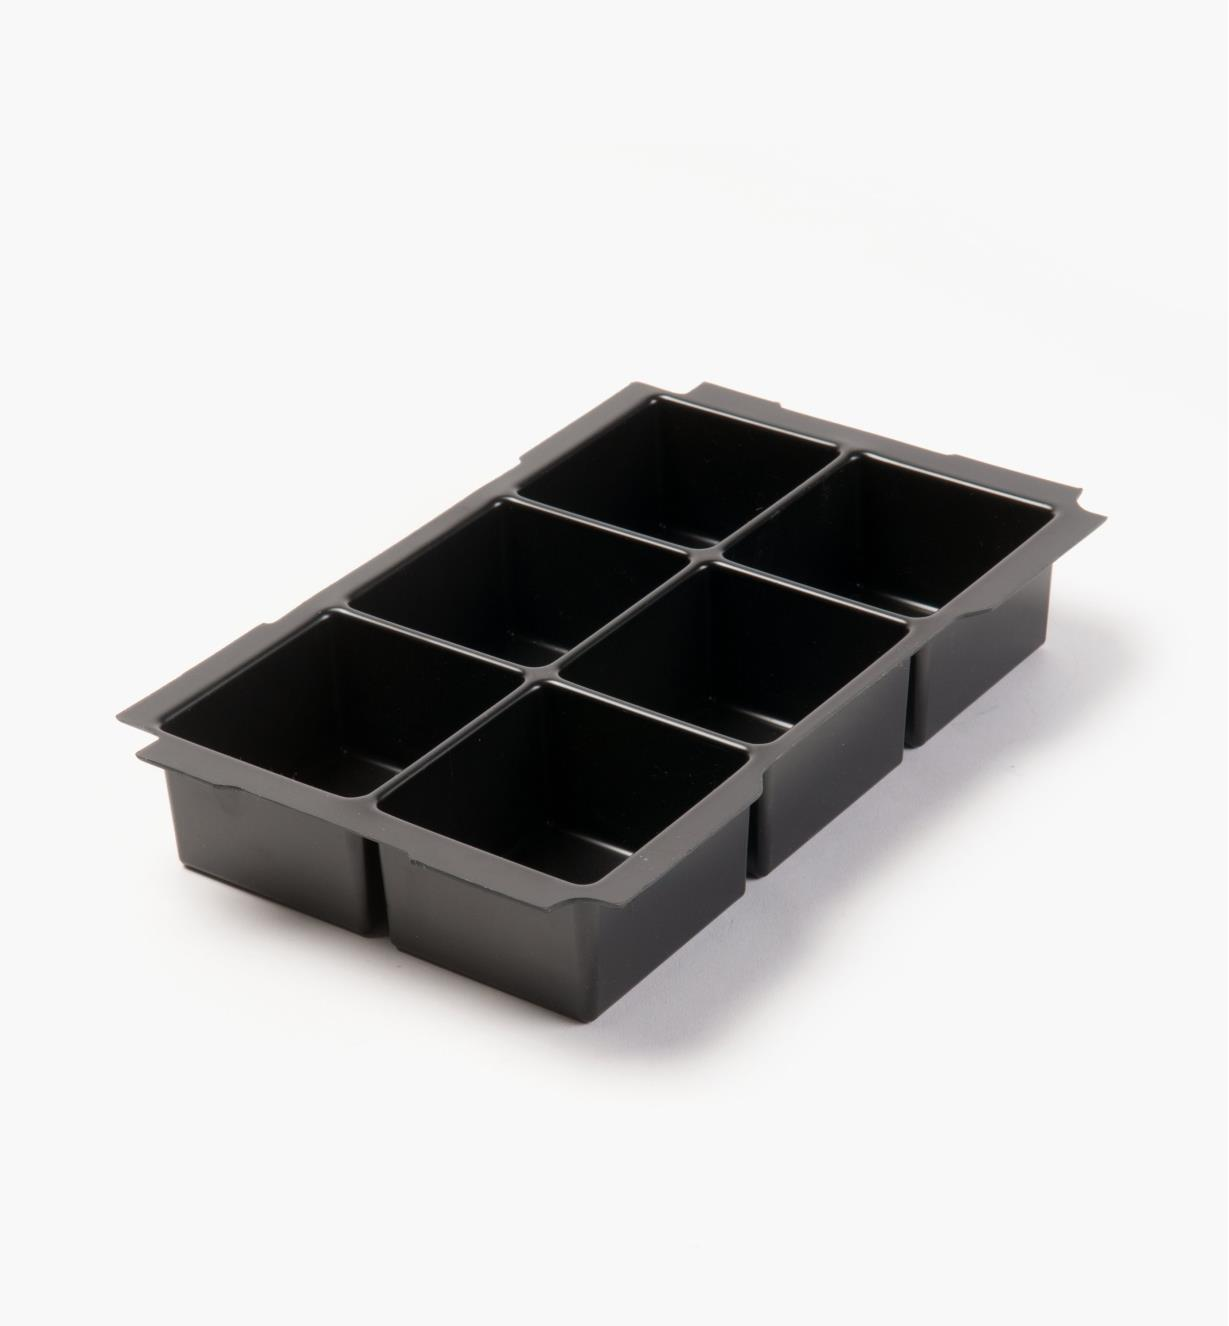 68K4532 - 6-Compartment Tray for T-Loc Mini Systainer